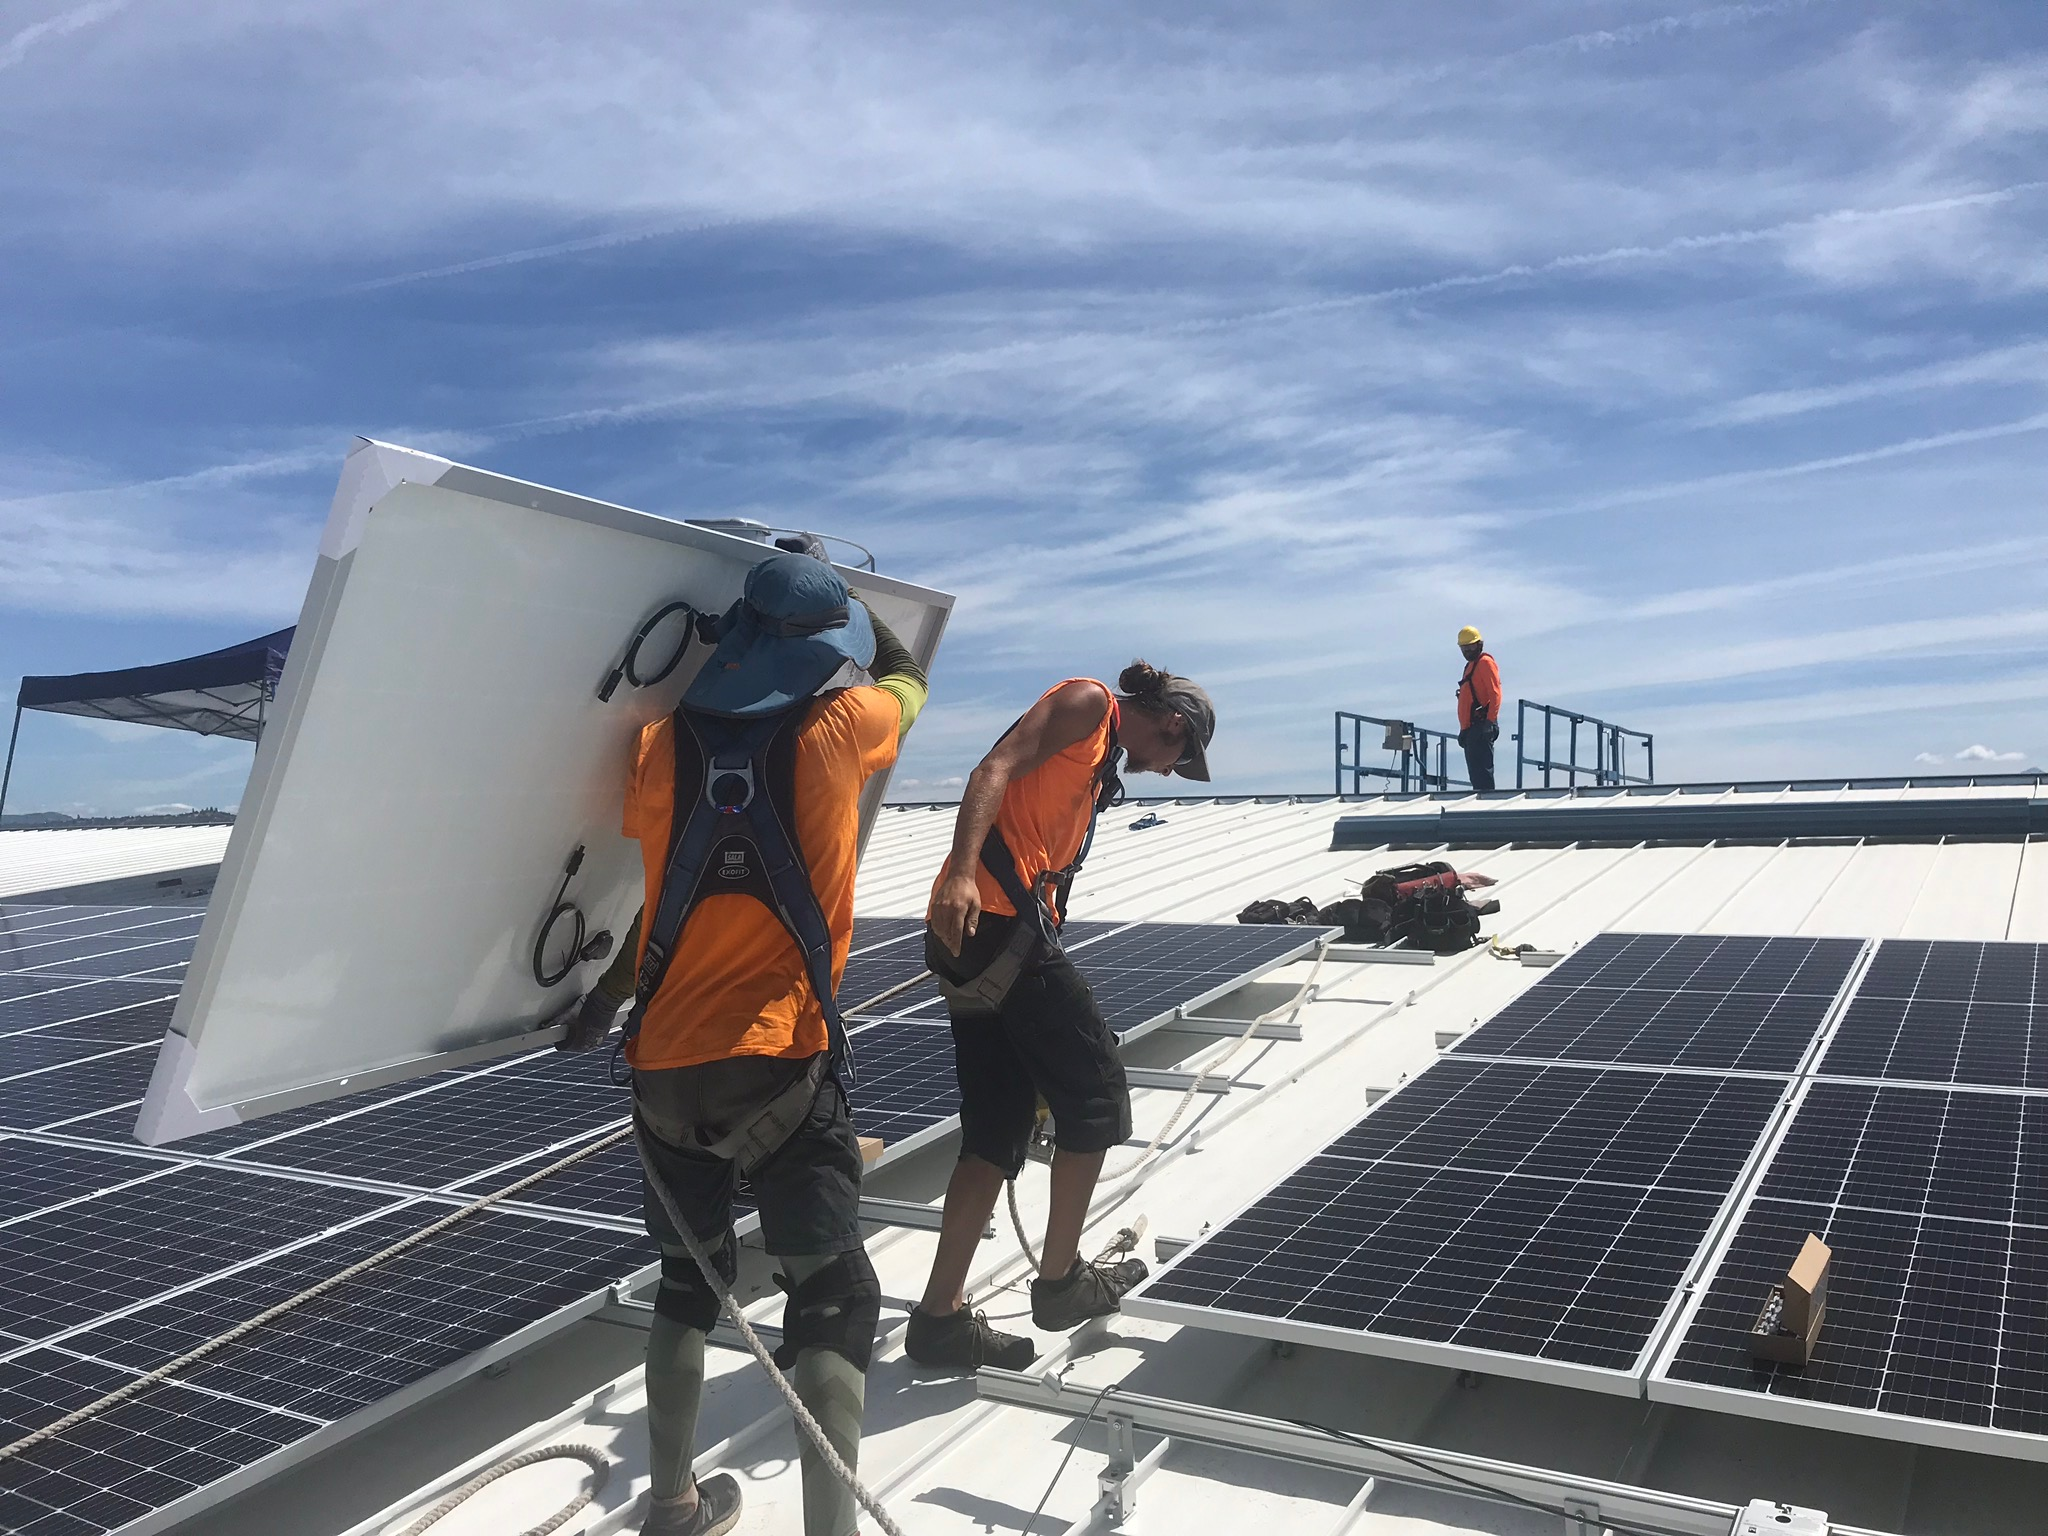 A New Day Solar installer secures a microinverter to racking.